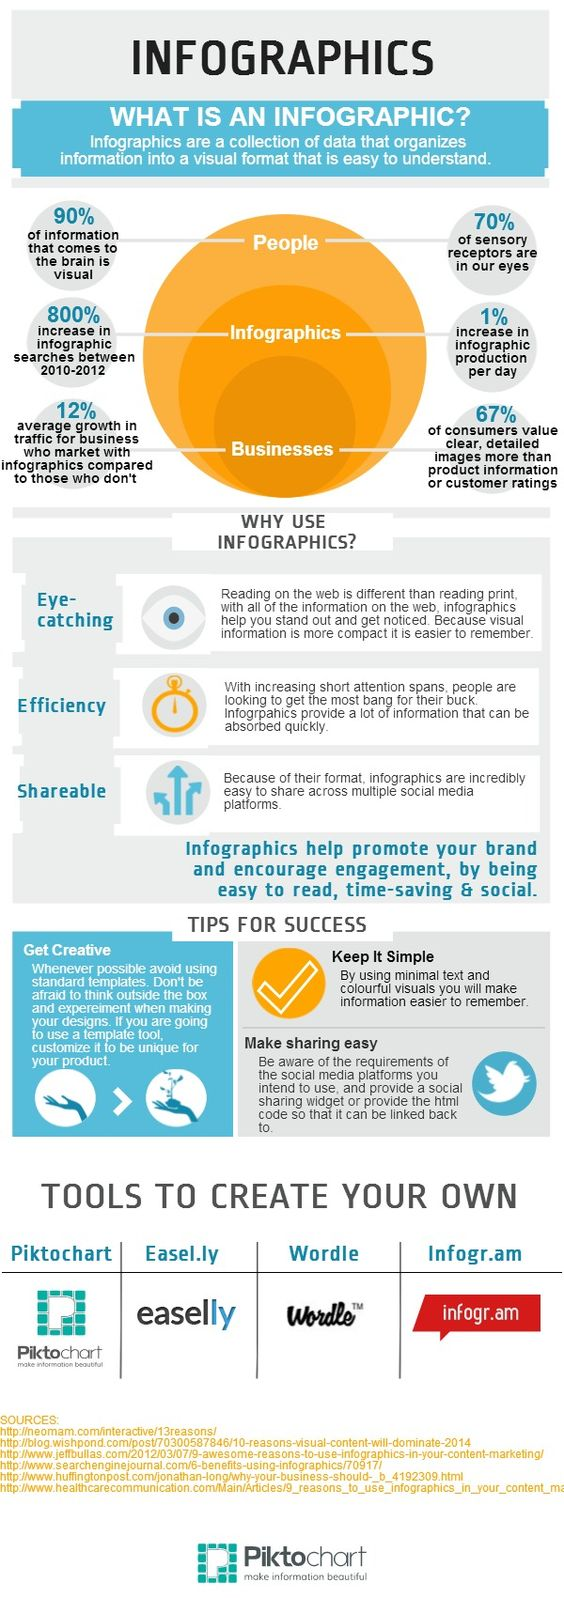 How infographics can help your brand